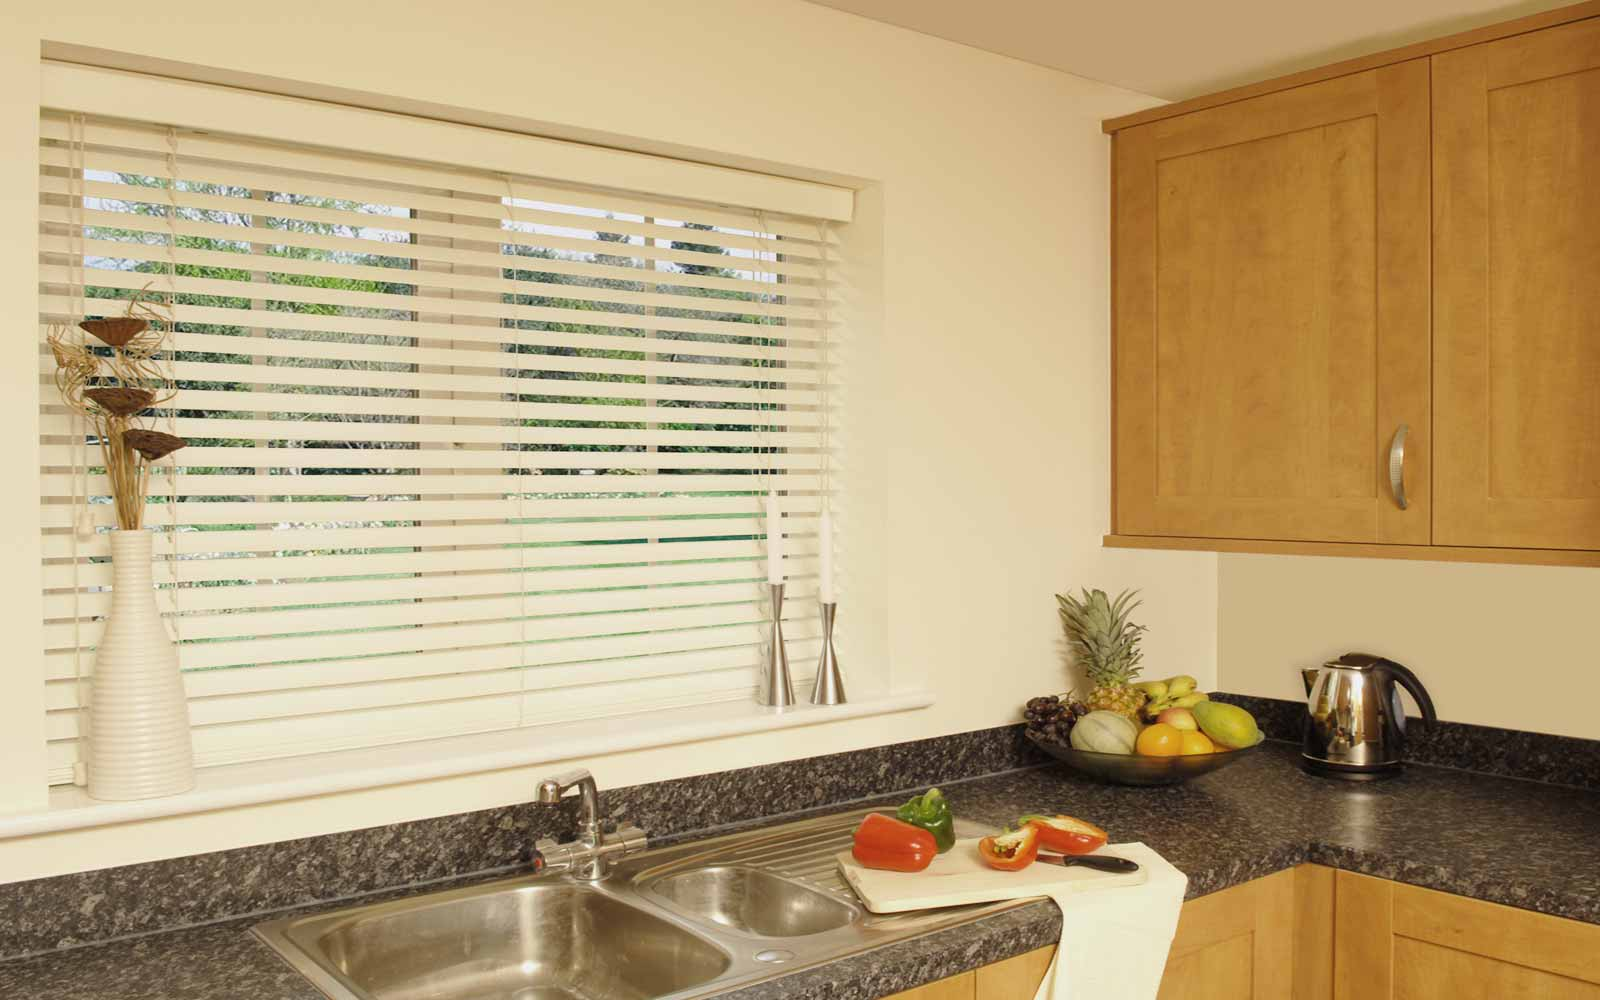 Faux Wooden Venetian Blind in a Kitchen Surrey Blinds Shutters